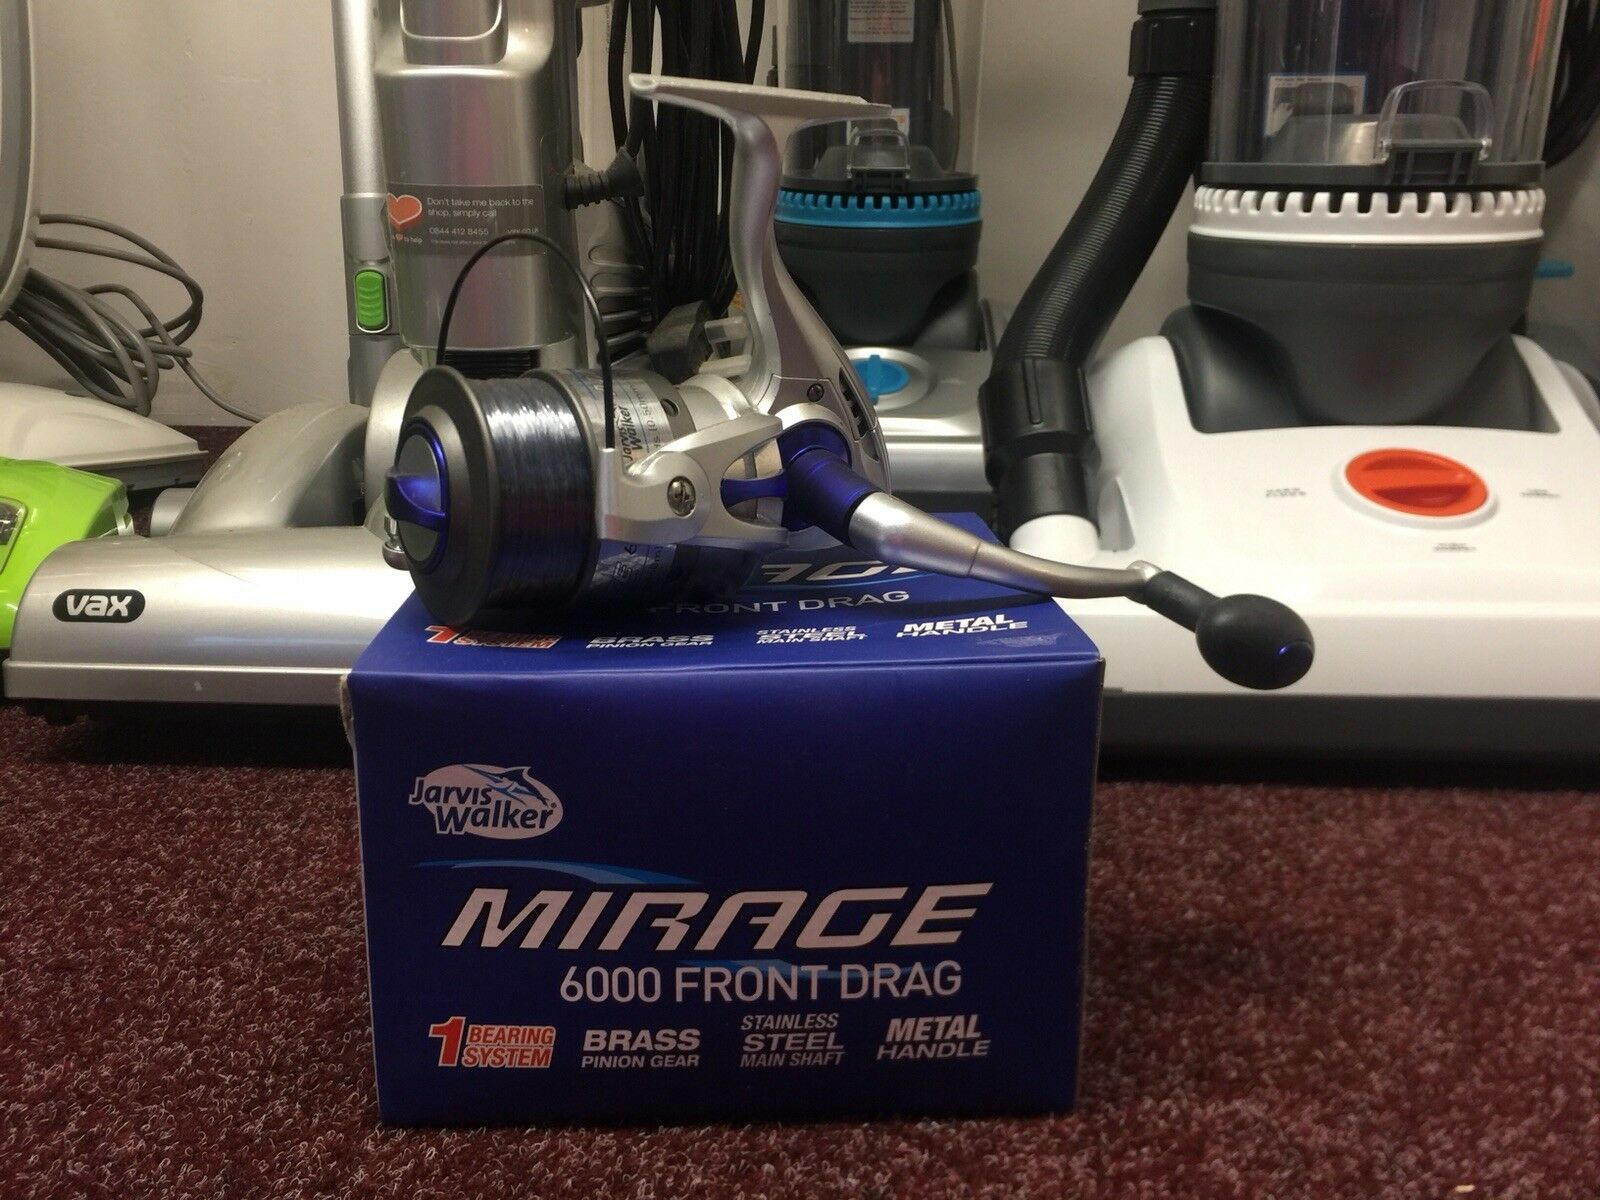 Jarvis Walker Mirage 6000 Fixed Spool Reel Loaded With Line